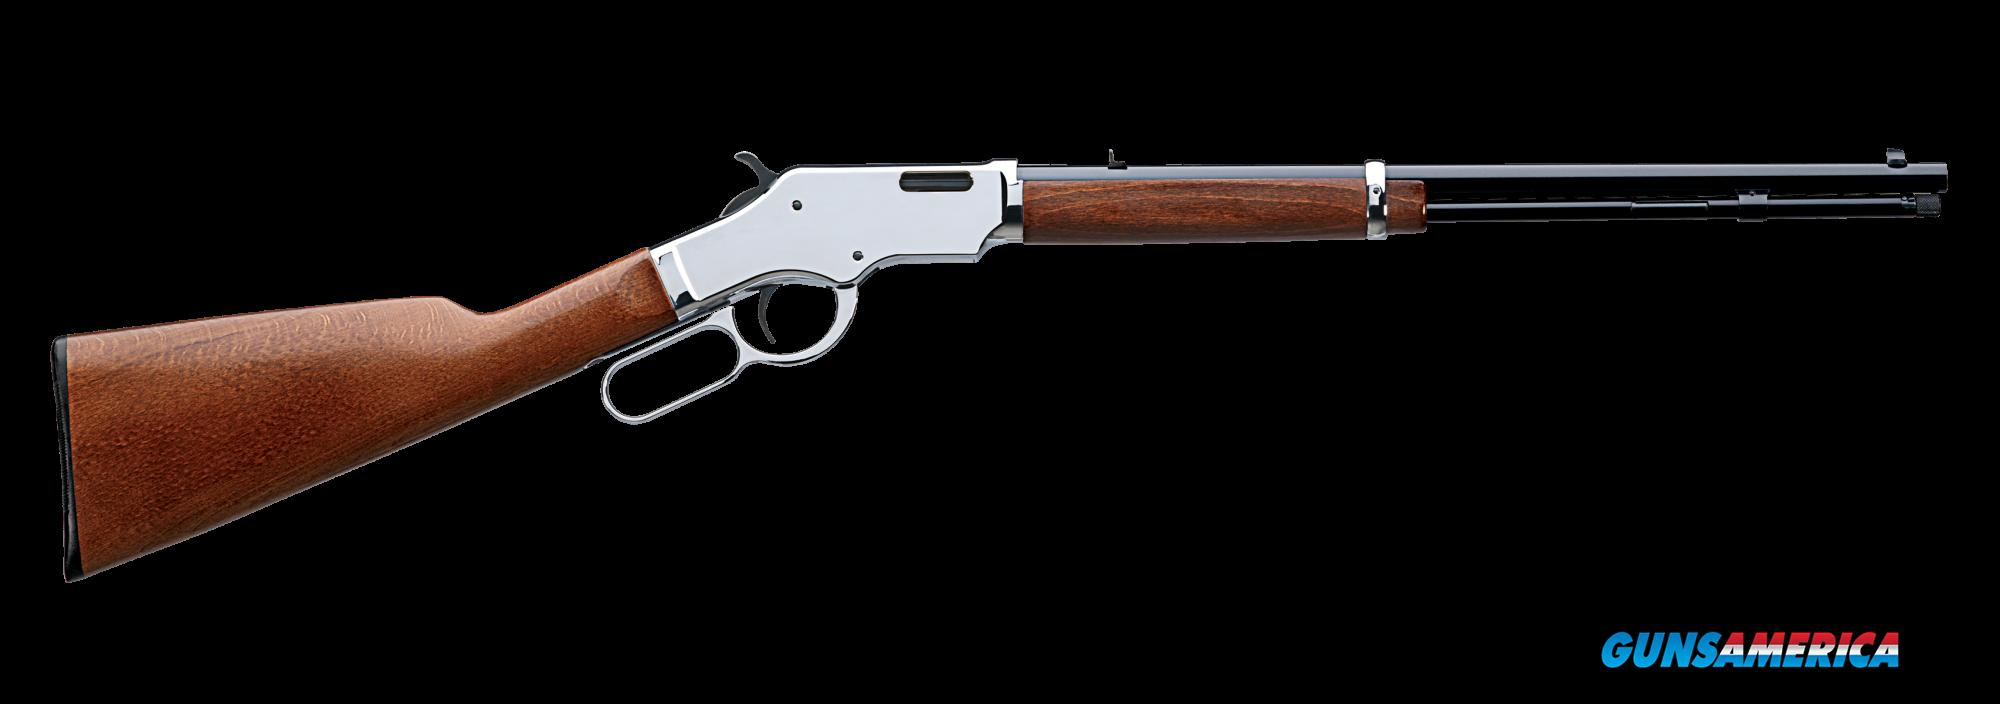 NIB Uberti Silver Boy 22 MAGNUM!!! Layaway Available Give Us A Call Today For Details!!!  Guns > Rifles > Uberti Rifles > Lever Action